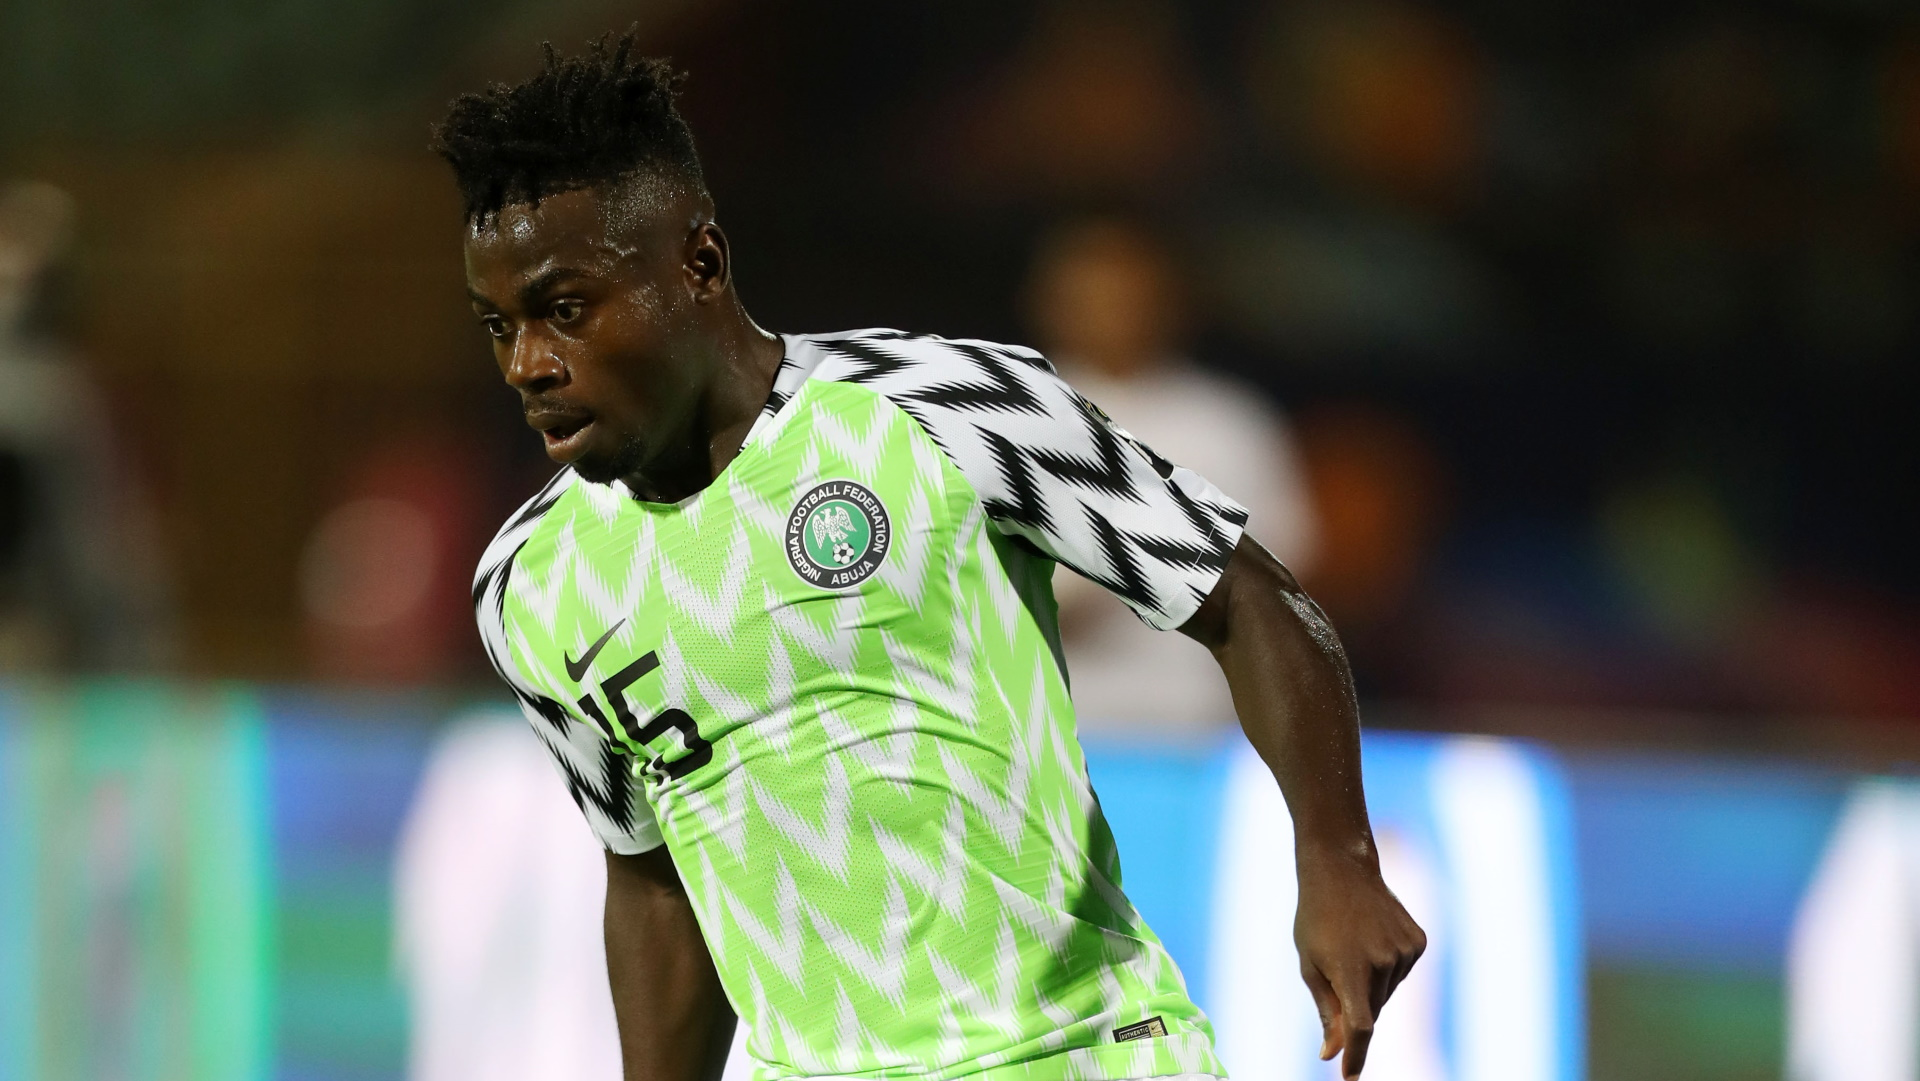 Nigeria vs Cameroon: Is there any point?